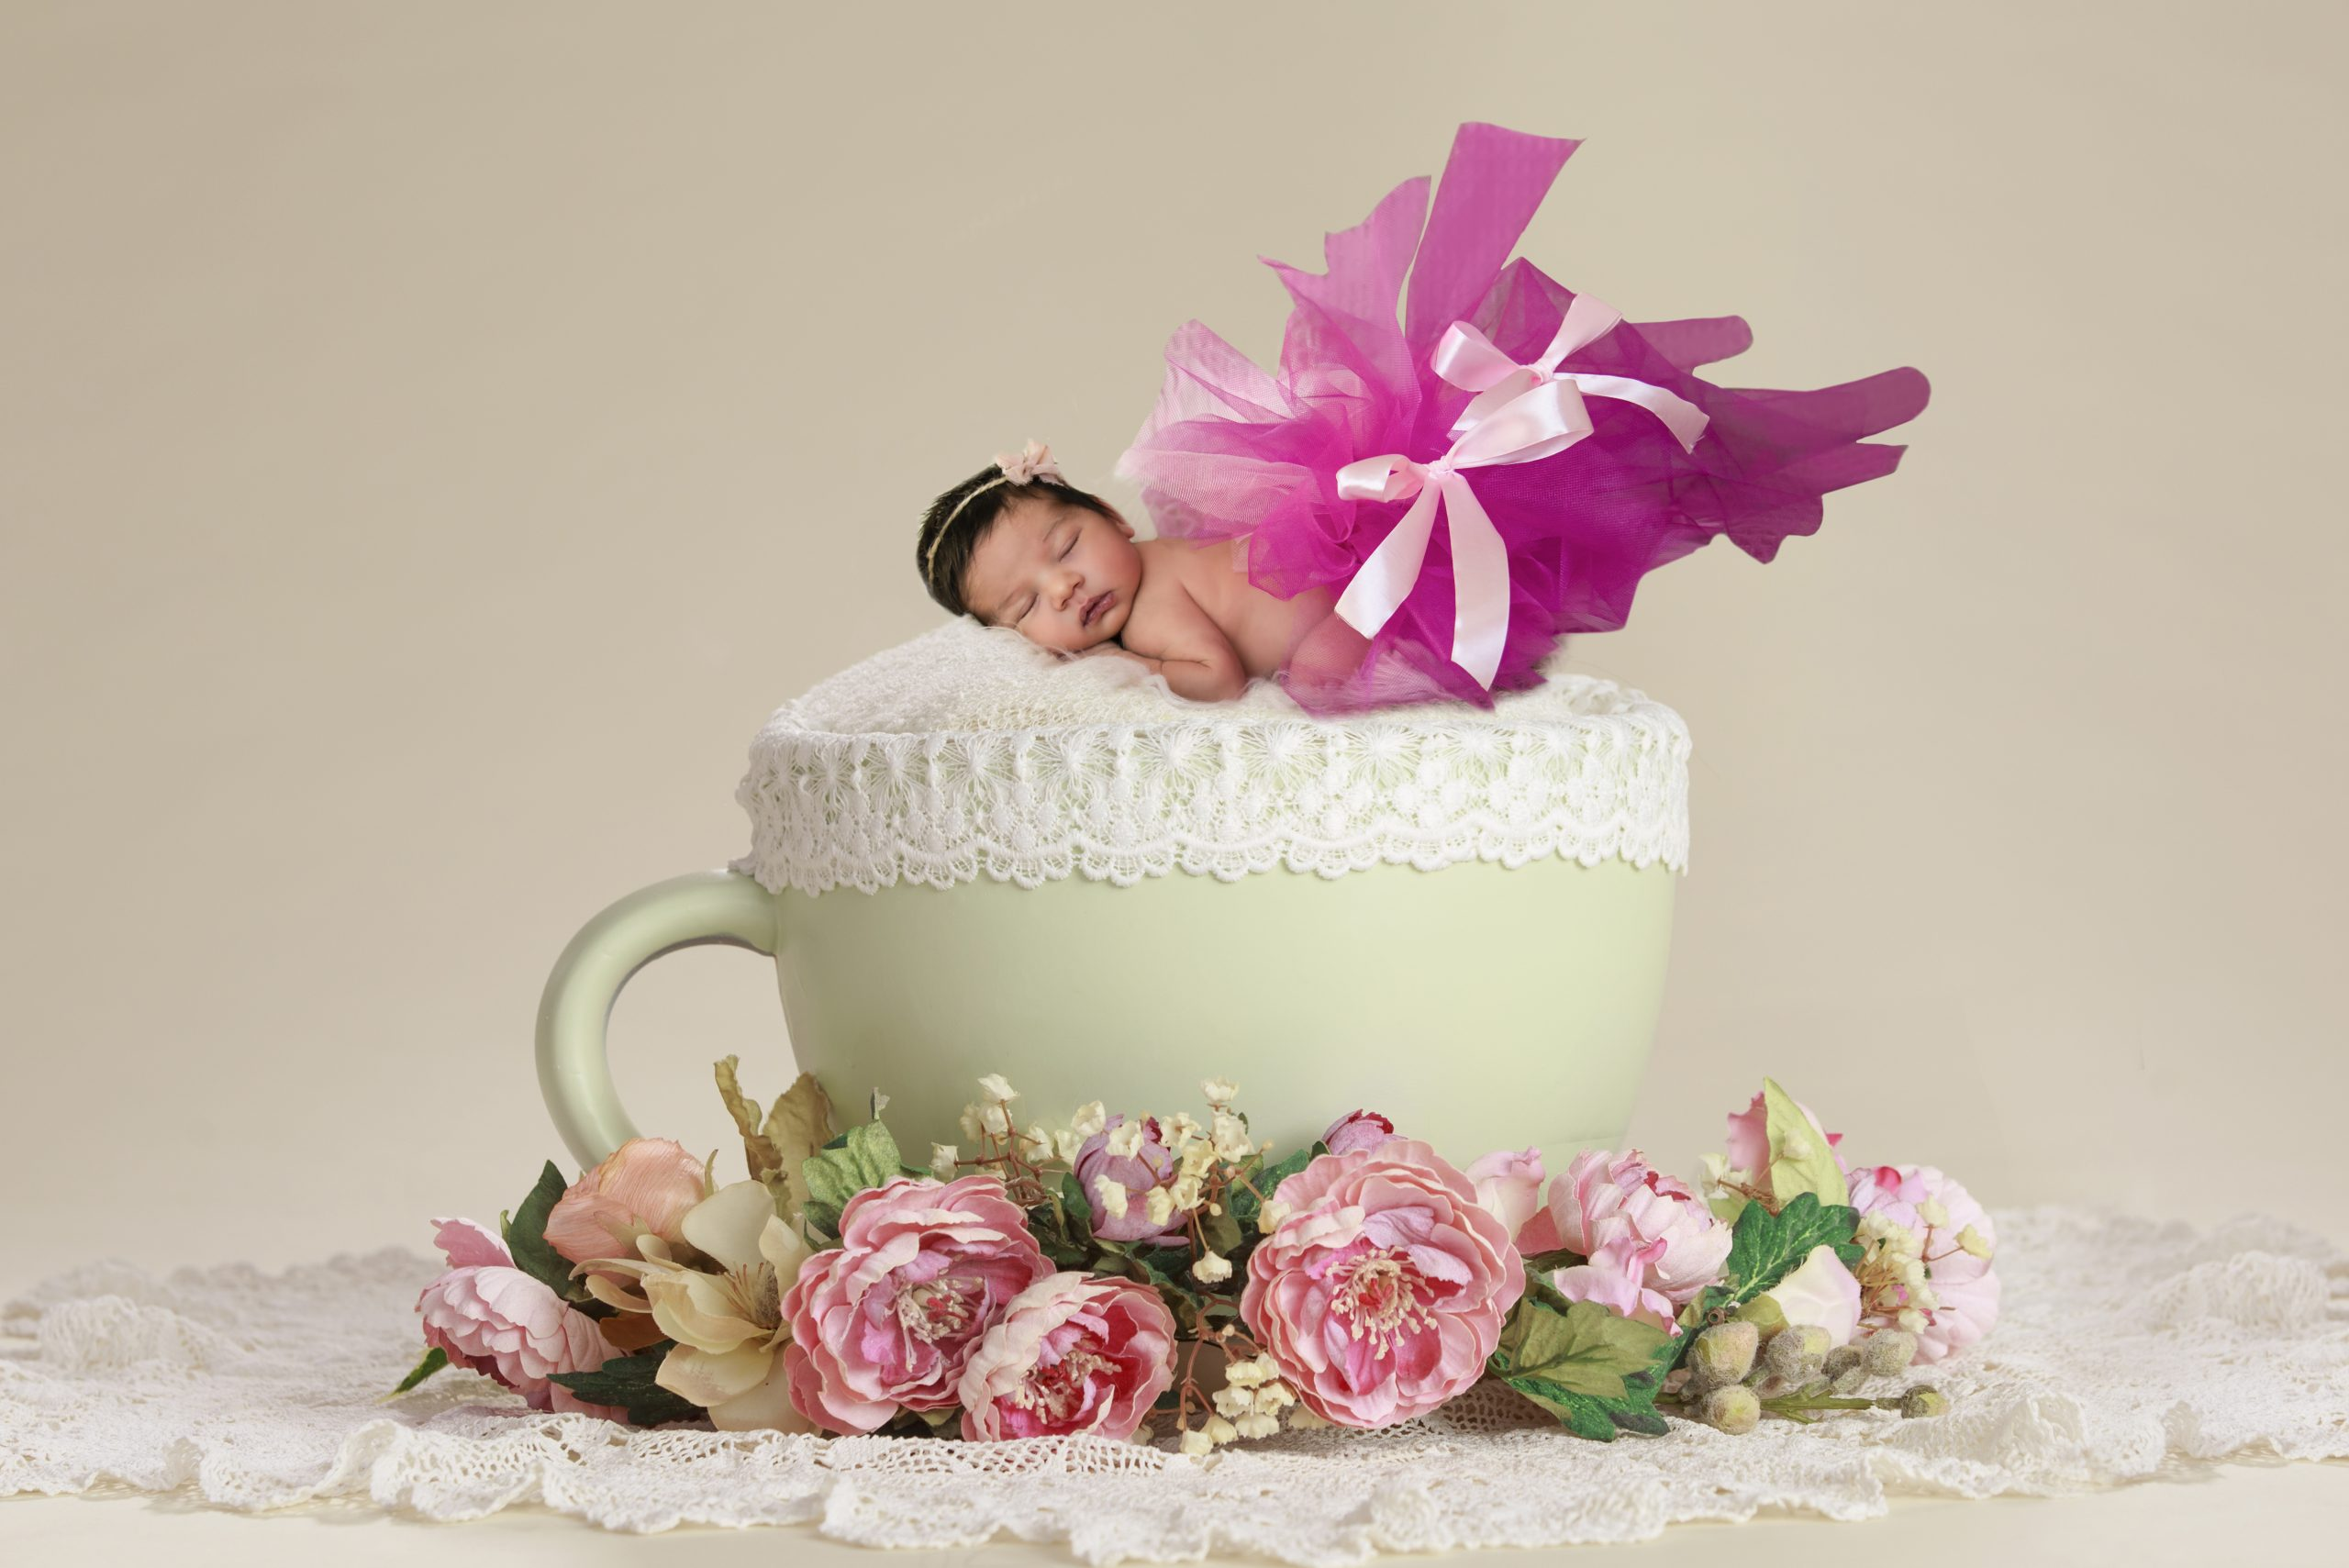 Showing a baby sleeping on a cup cushion